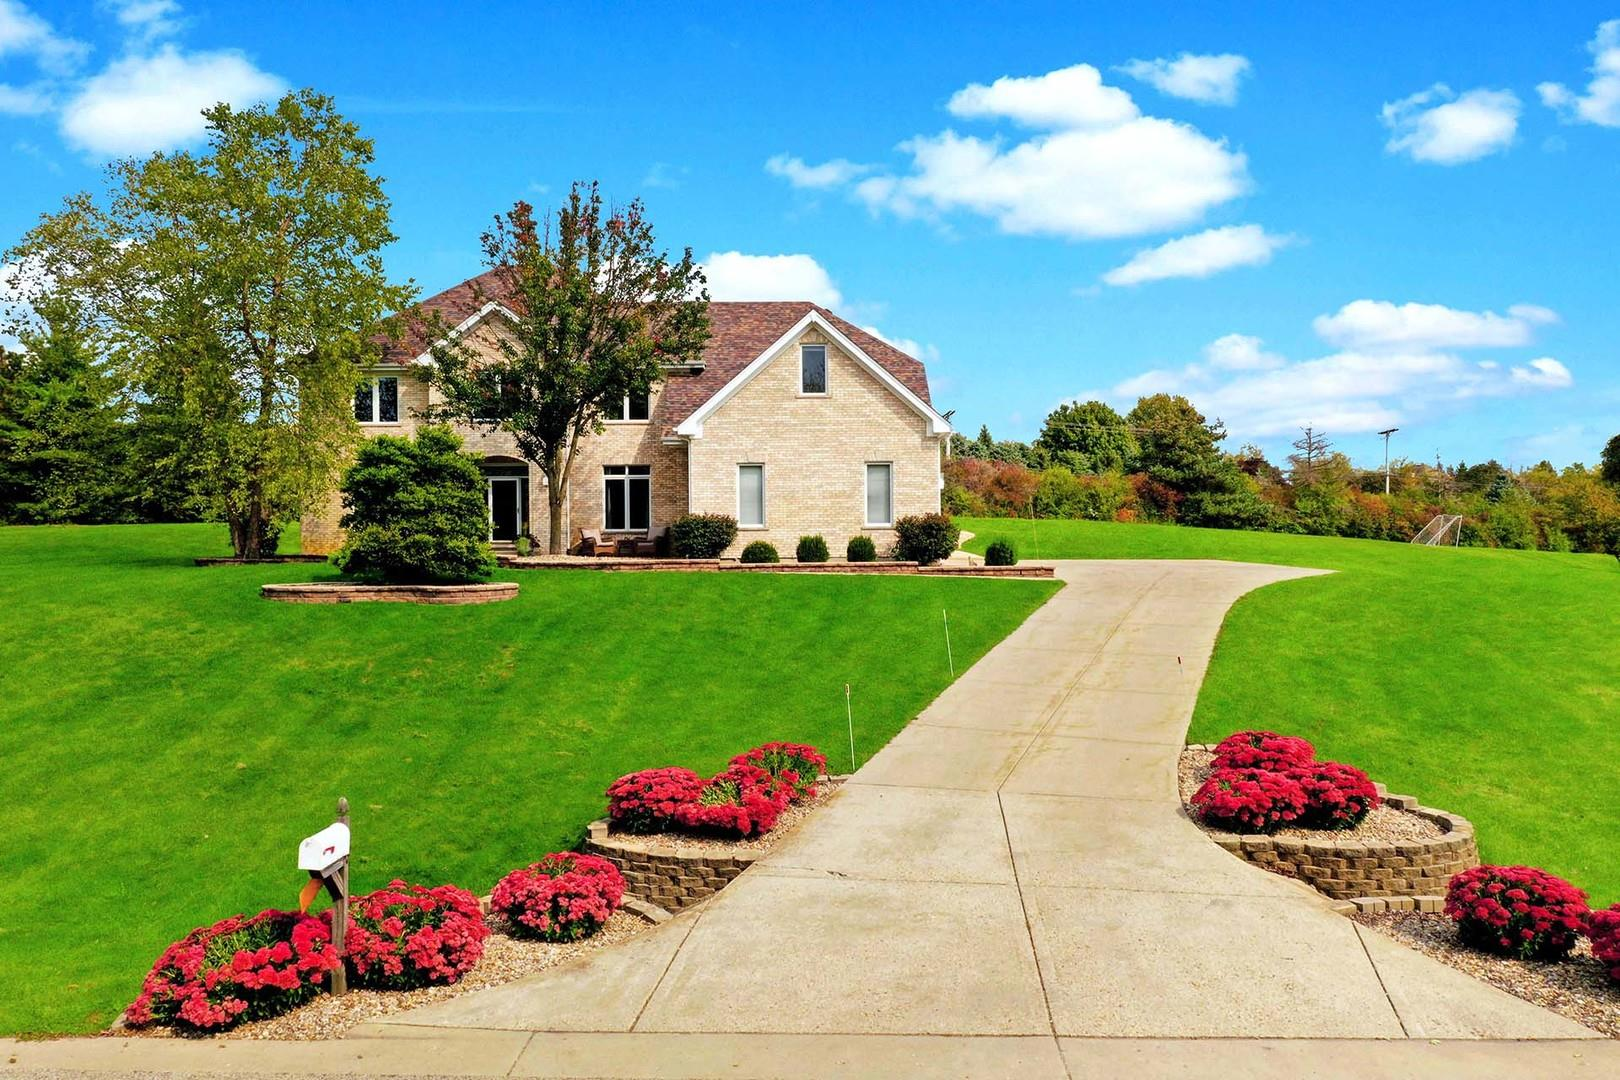 171 Sycamore Drive, Hawthorn Woods, IL 60047 - #: 10882724